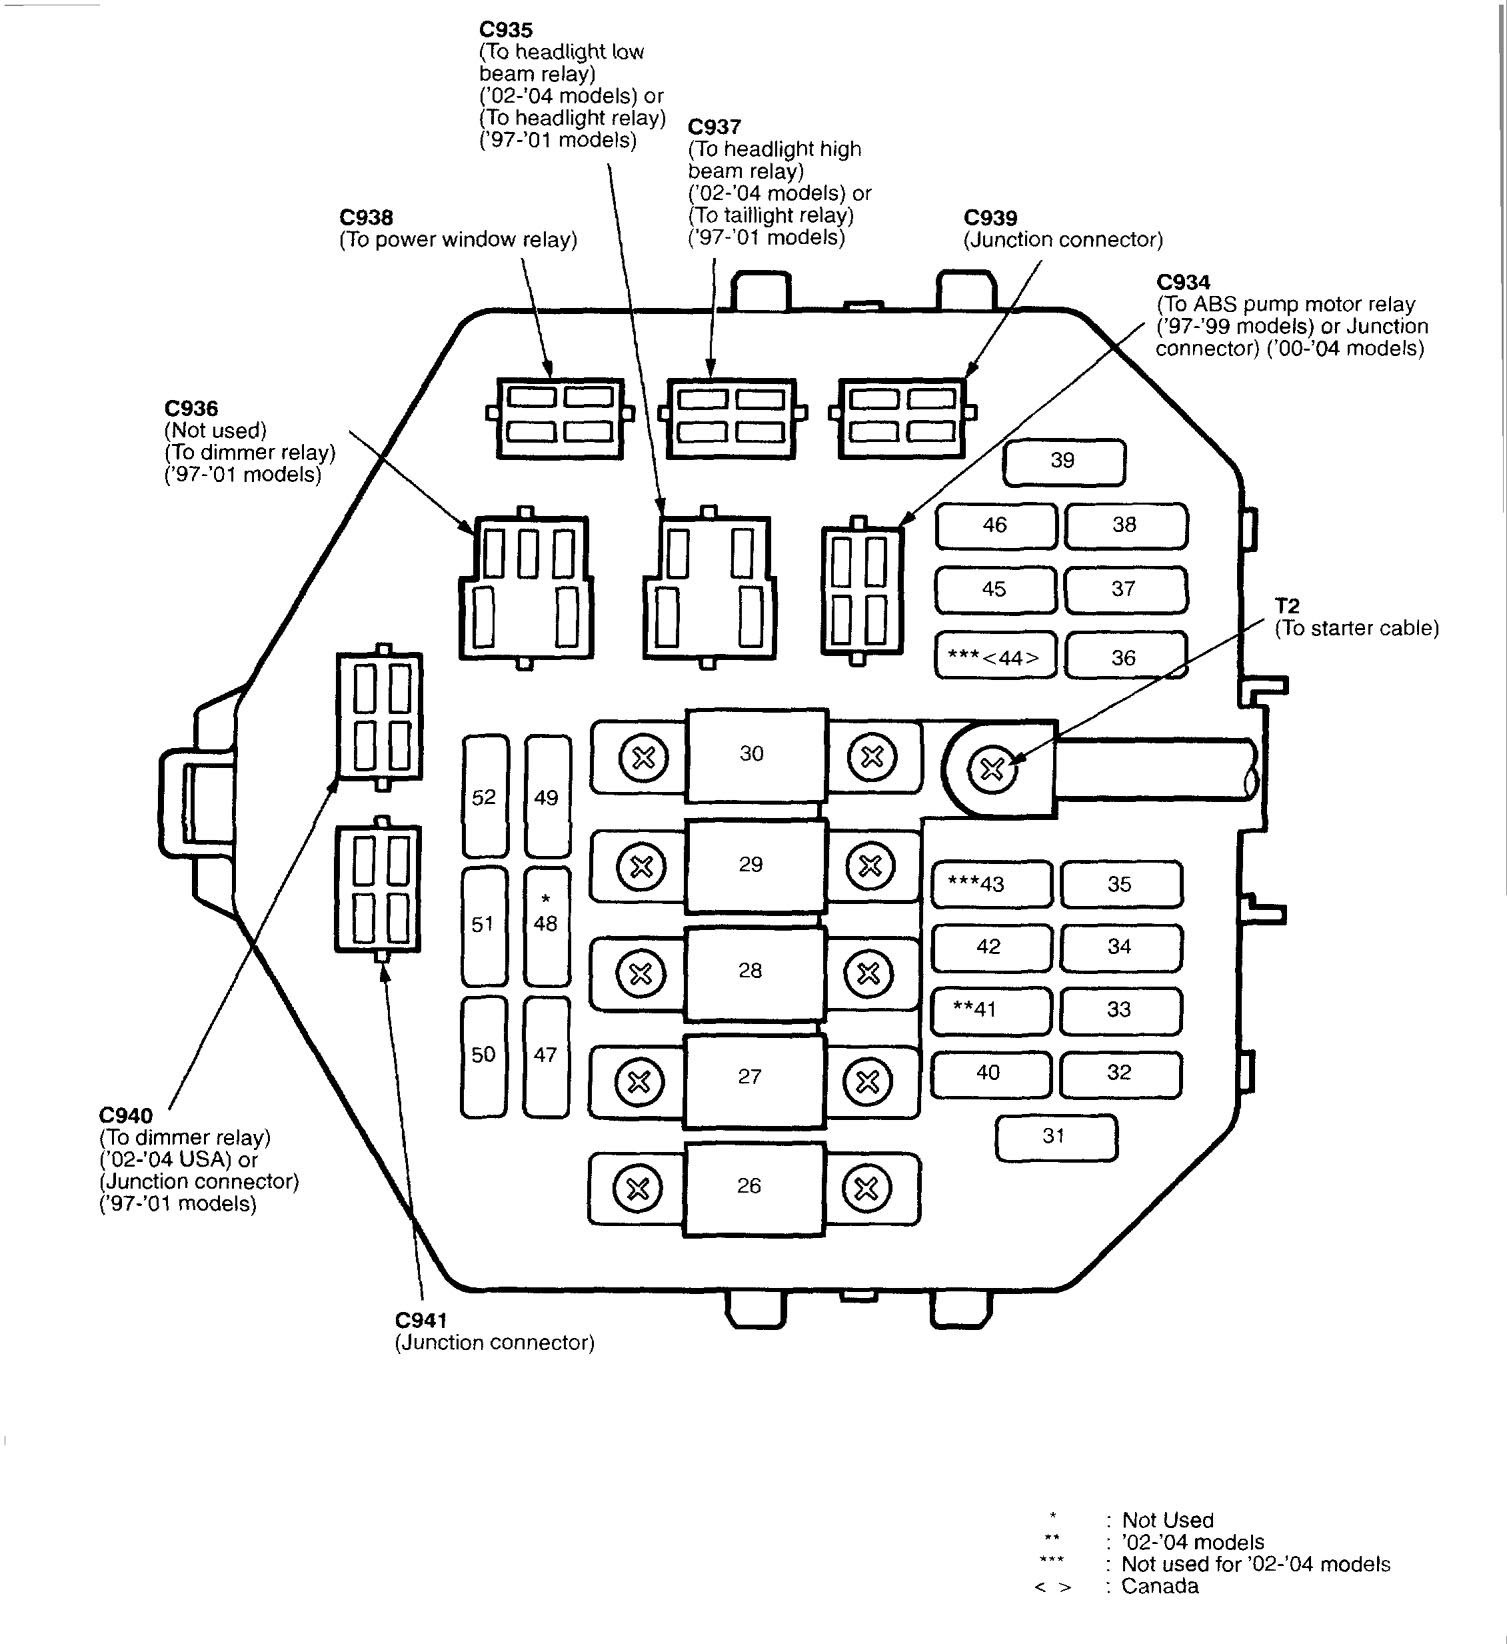 95 Integra Fuse Diagram - Wiring Diagram